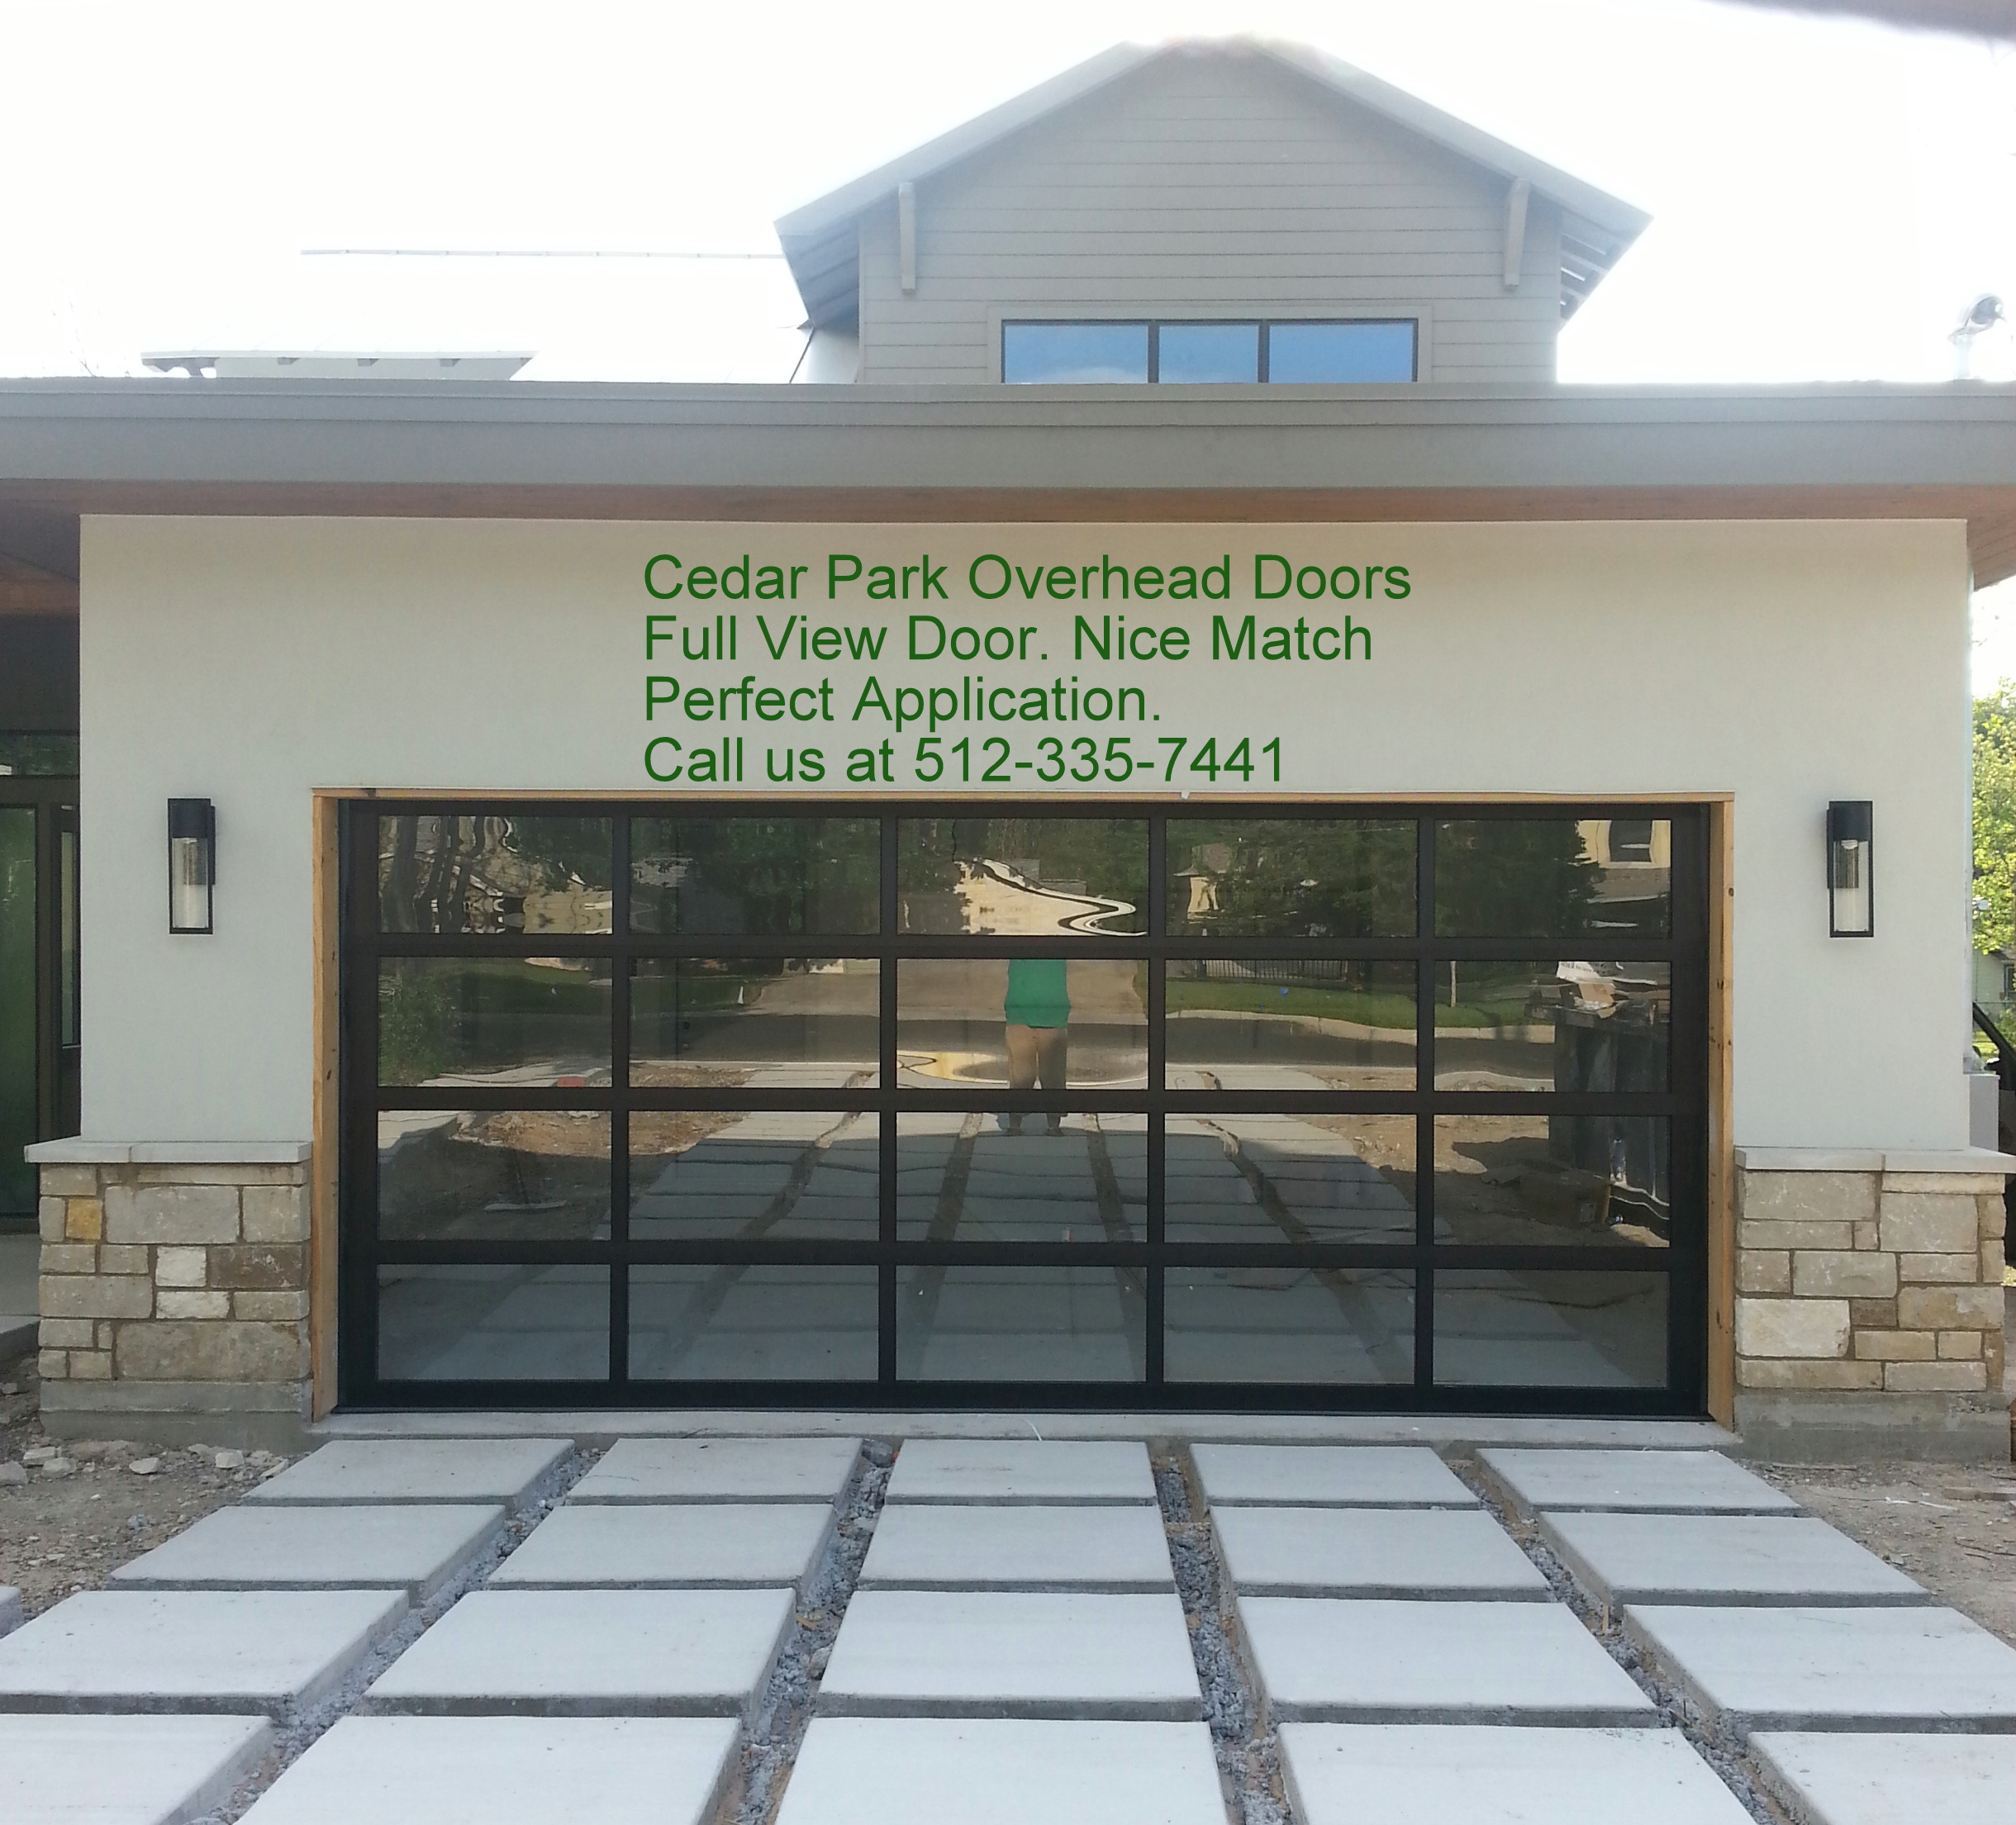 Fullview Door. Full View Aluminum   Glass Doors   Cedar Park Overhead Doors